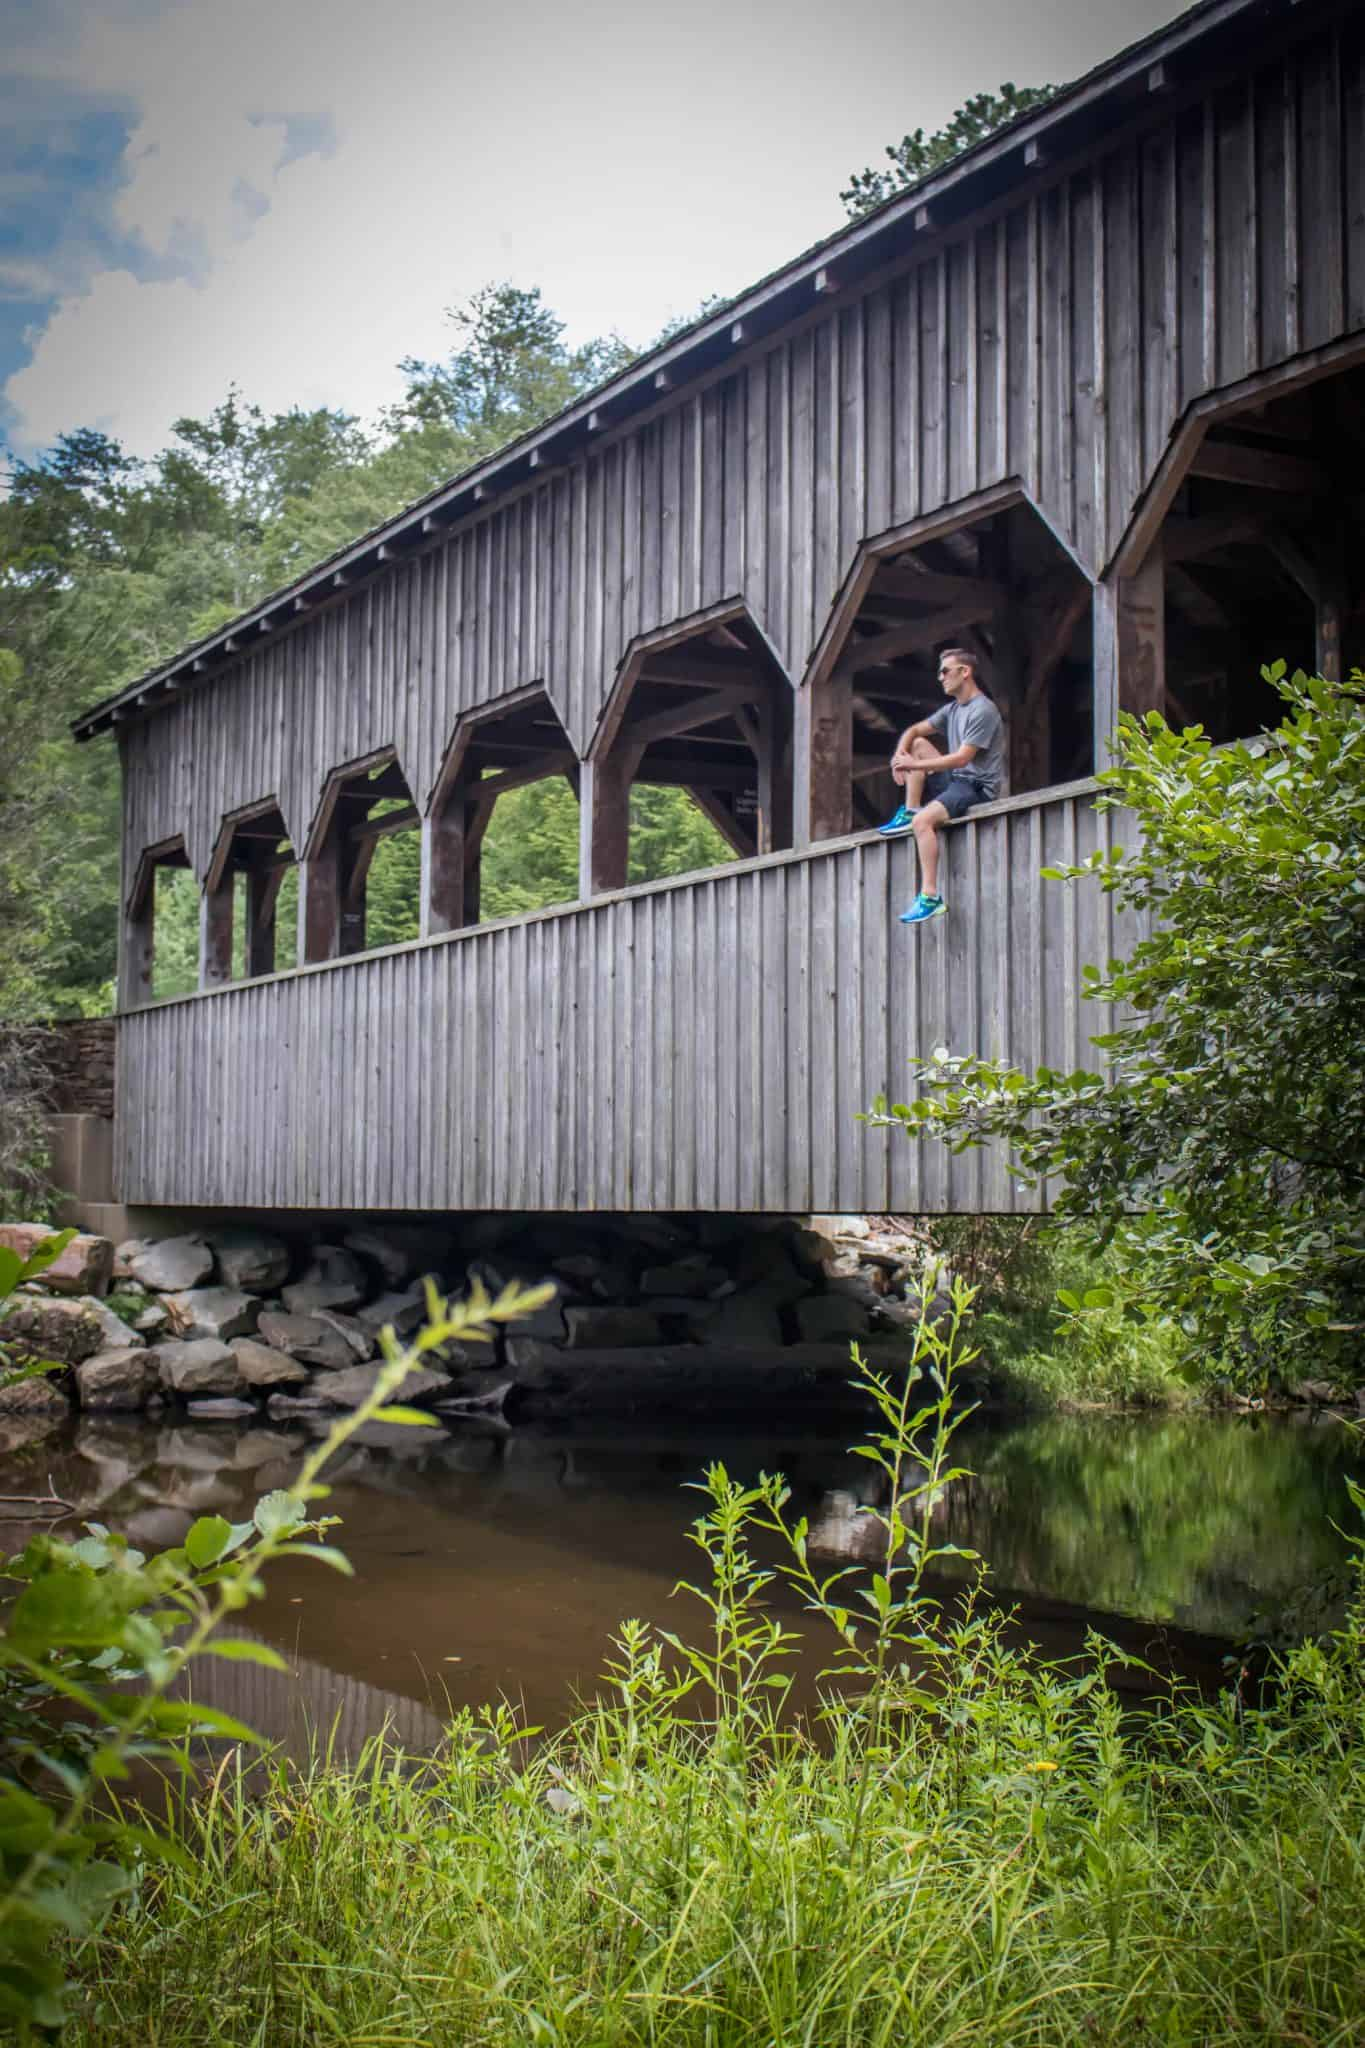 Cameron Seagle Romantic Things To Do Asheville